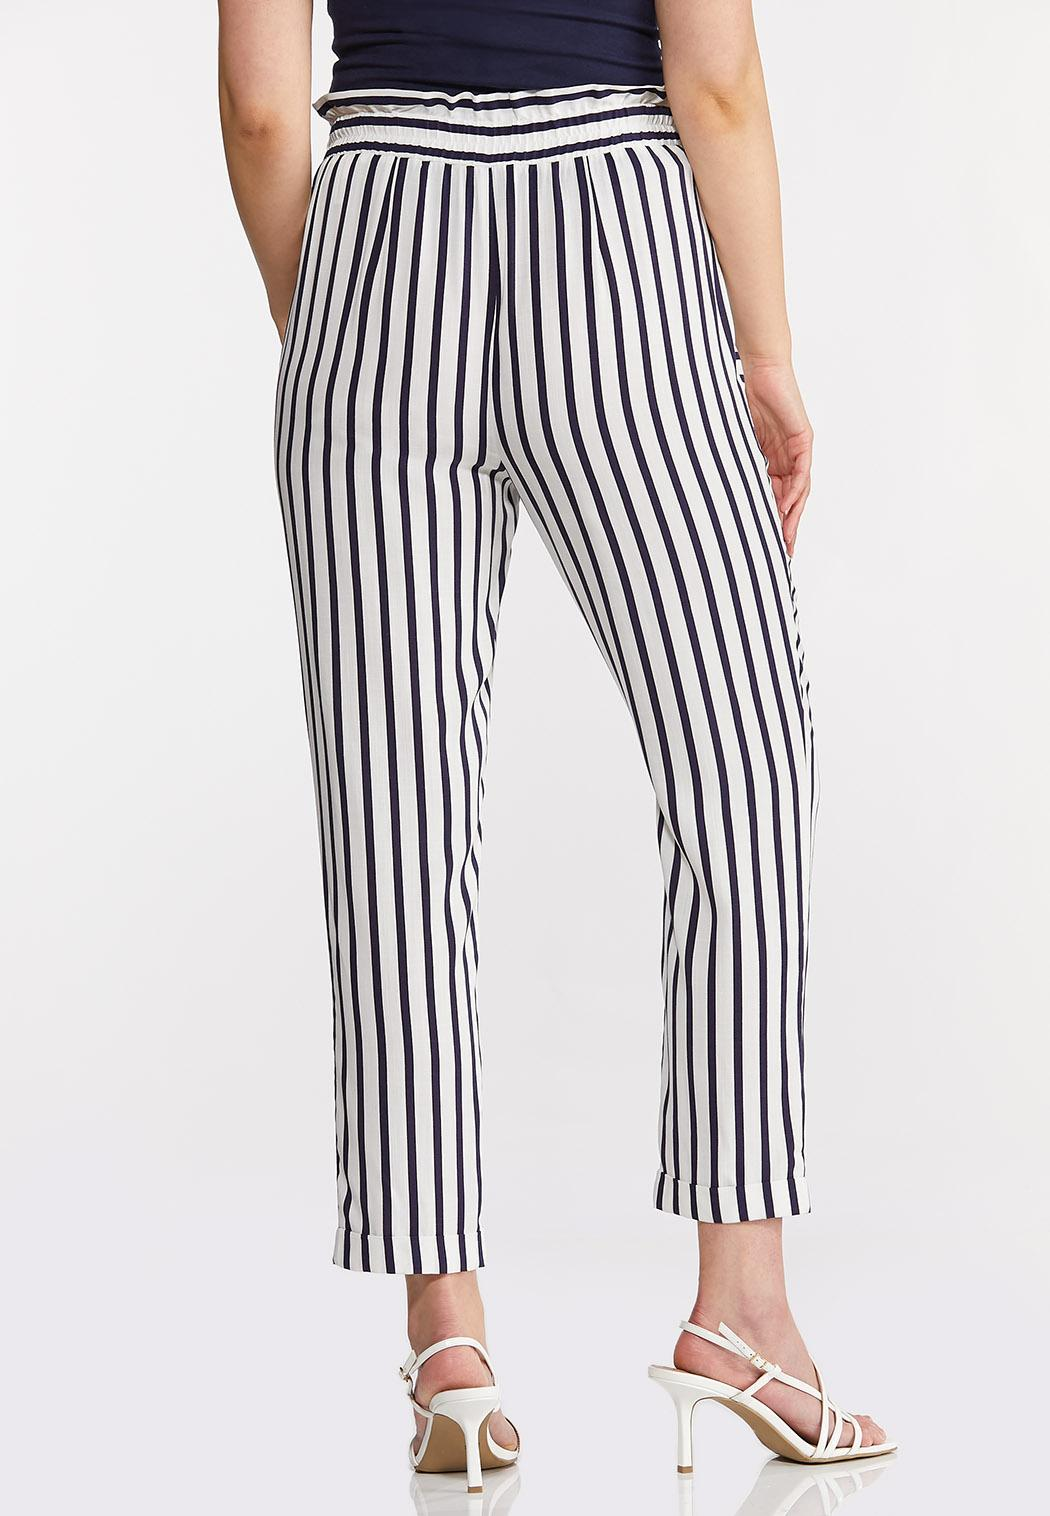 Stripe Tassel Tie Pants (Item #44257417)